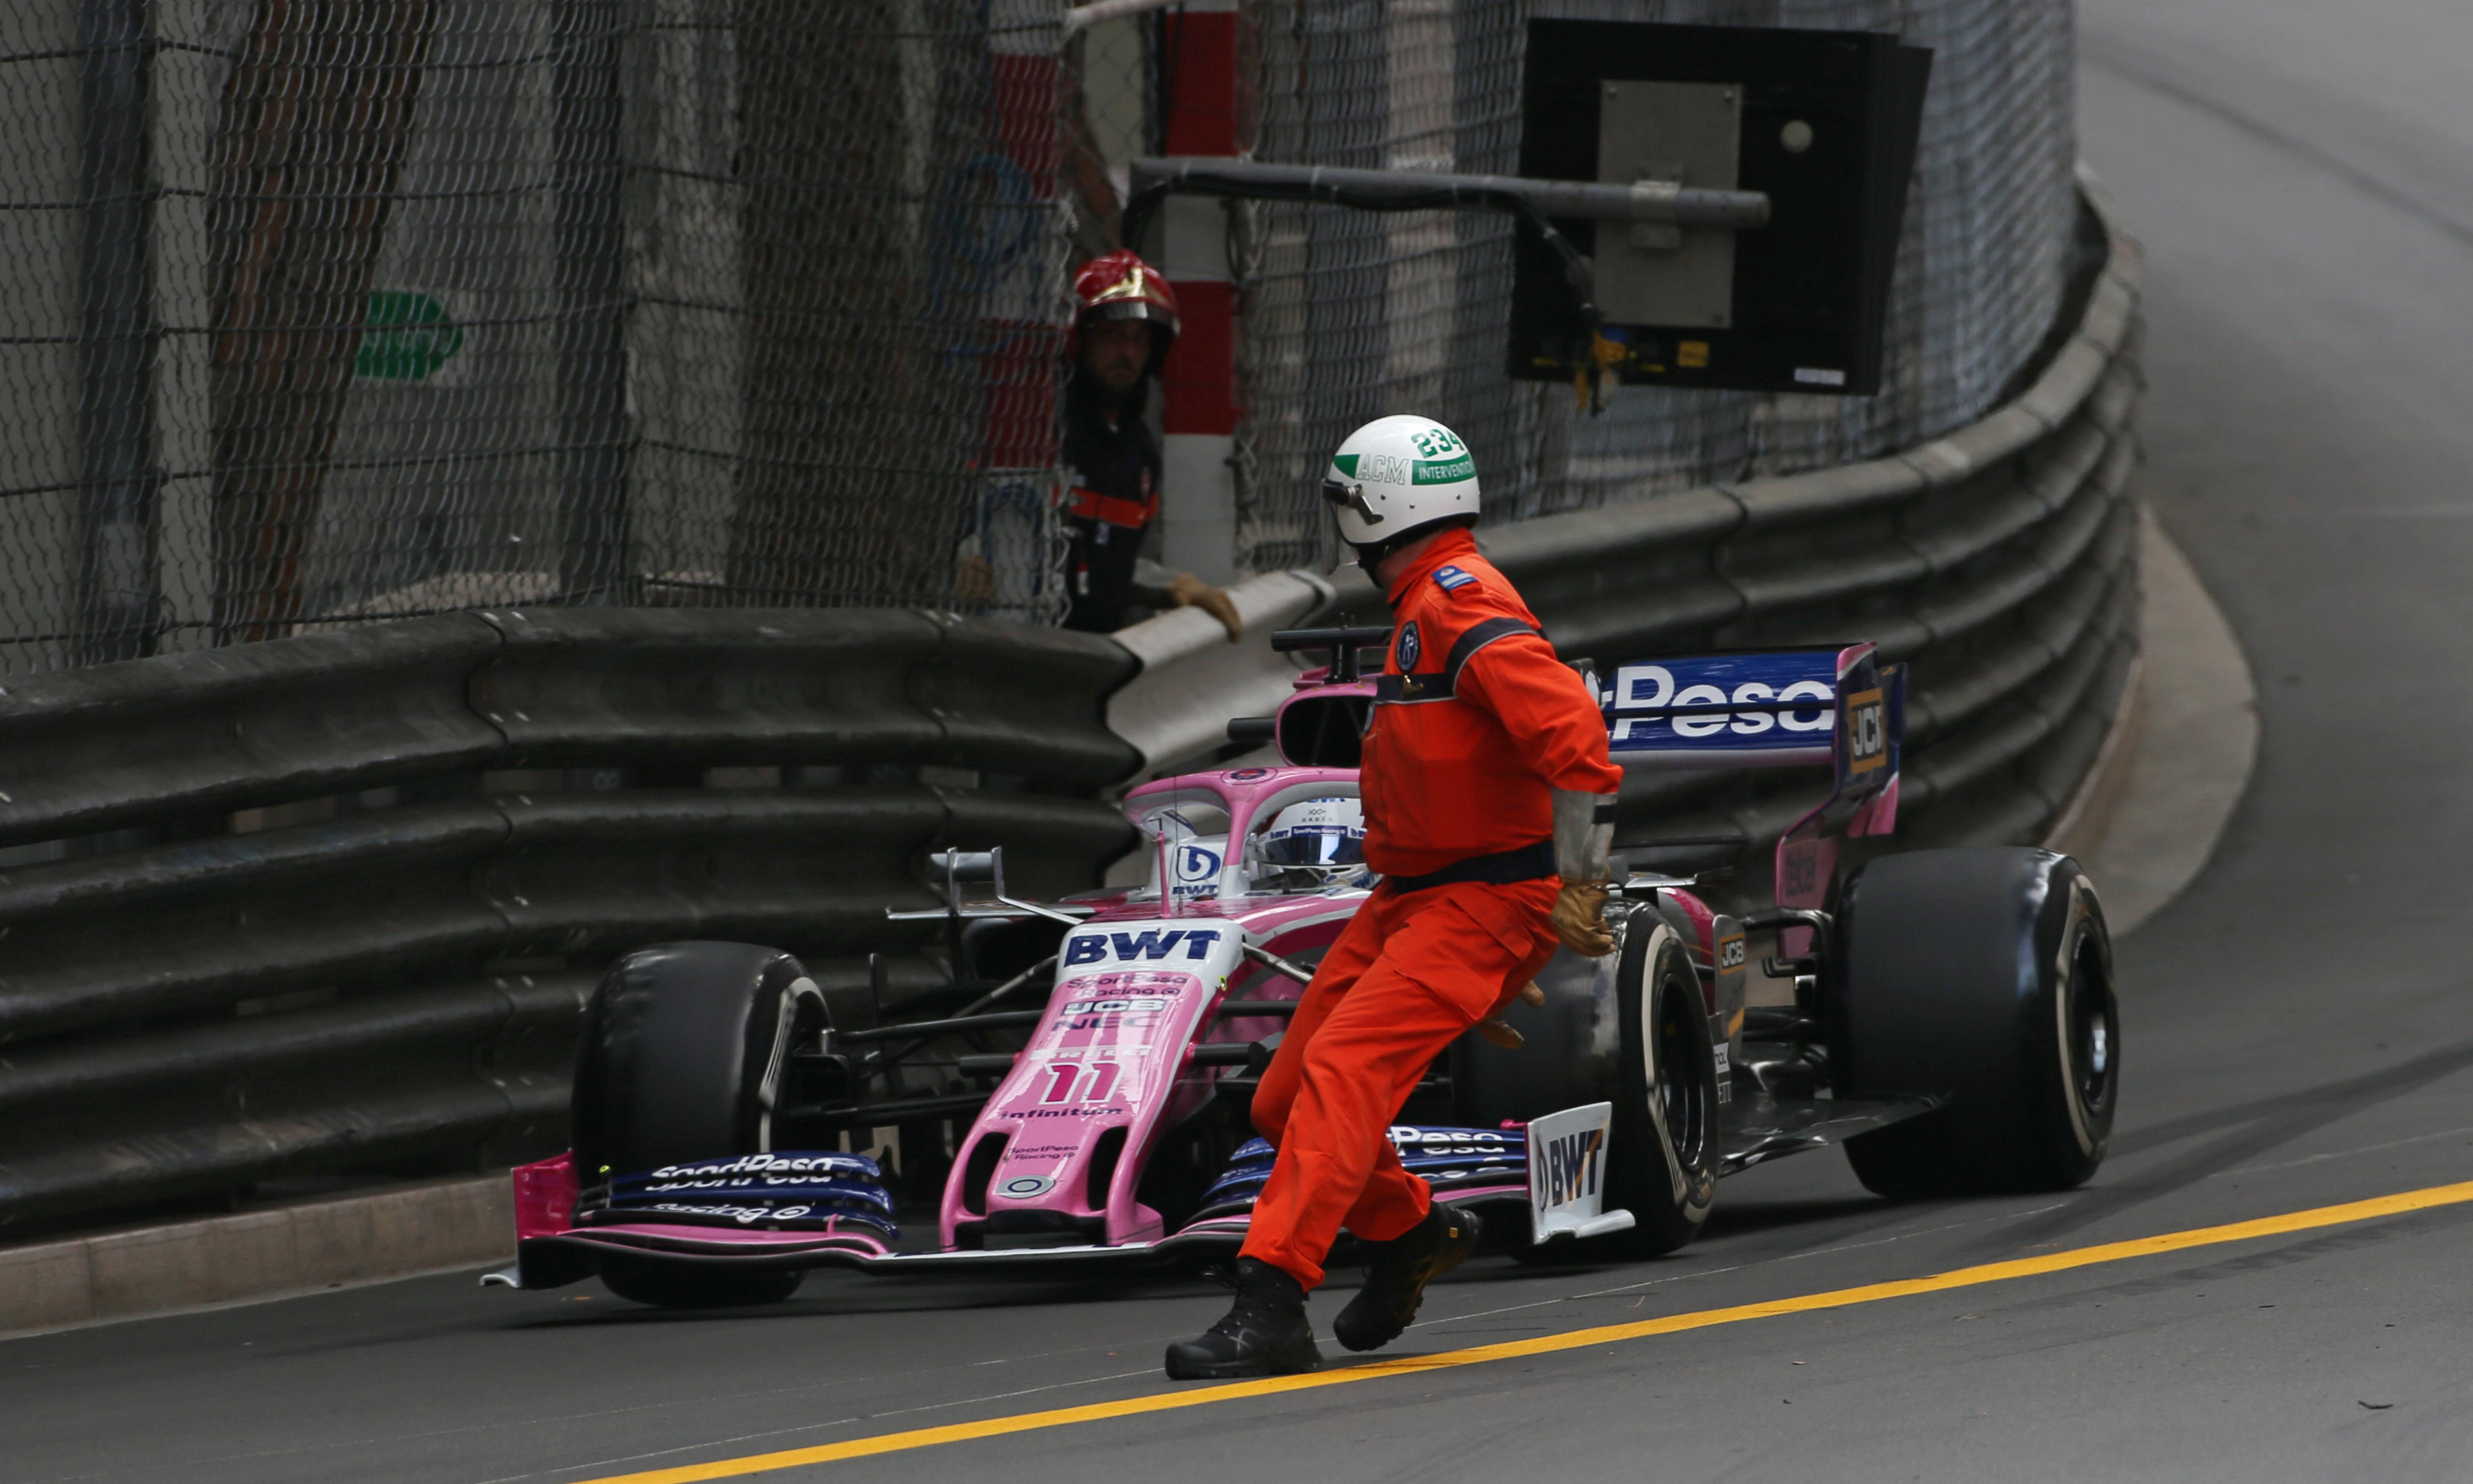 Sergio Pérez relieved after nearly running over marshal at Monaco GP